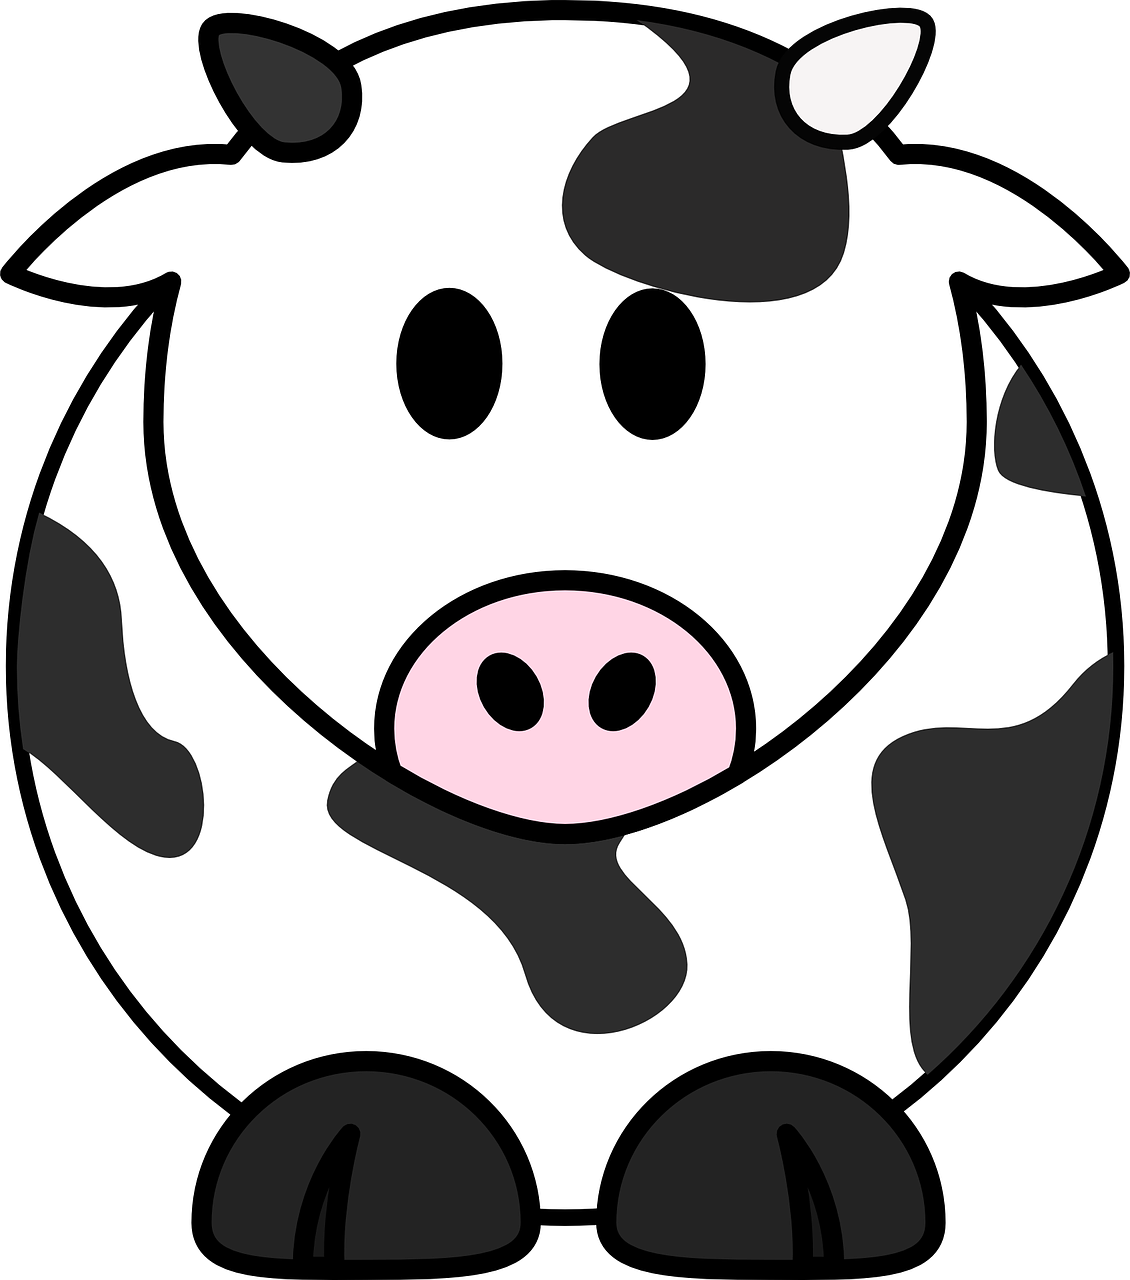 milk cow cow cattle black white moo cartoon cute [ 1130 x 1280 Pixel ]